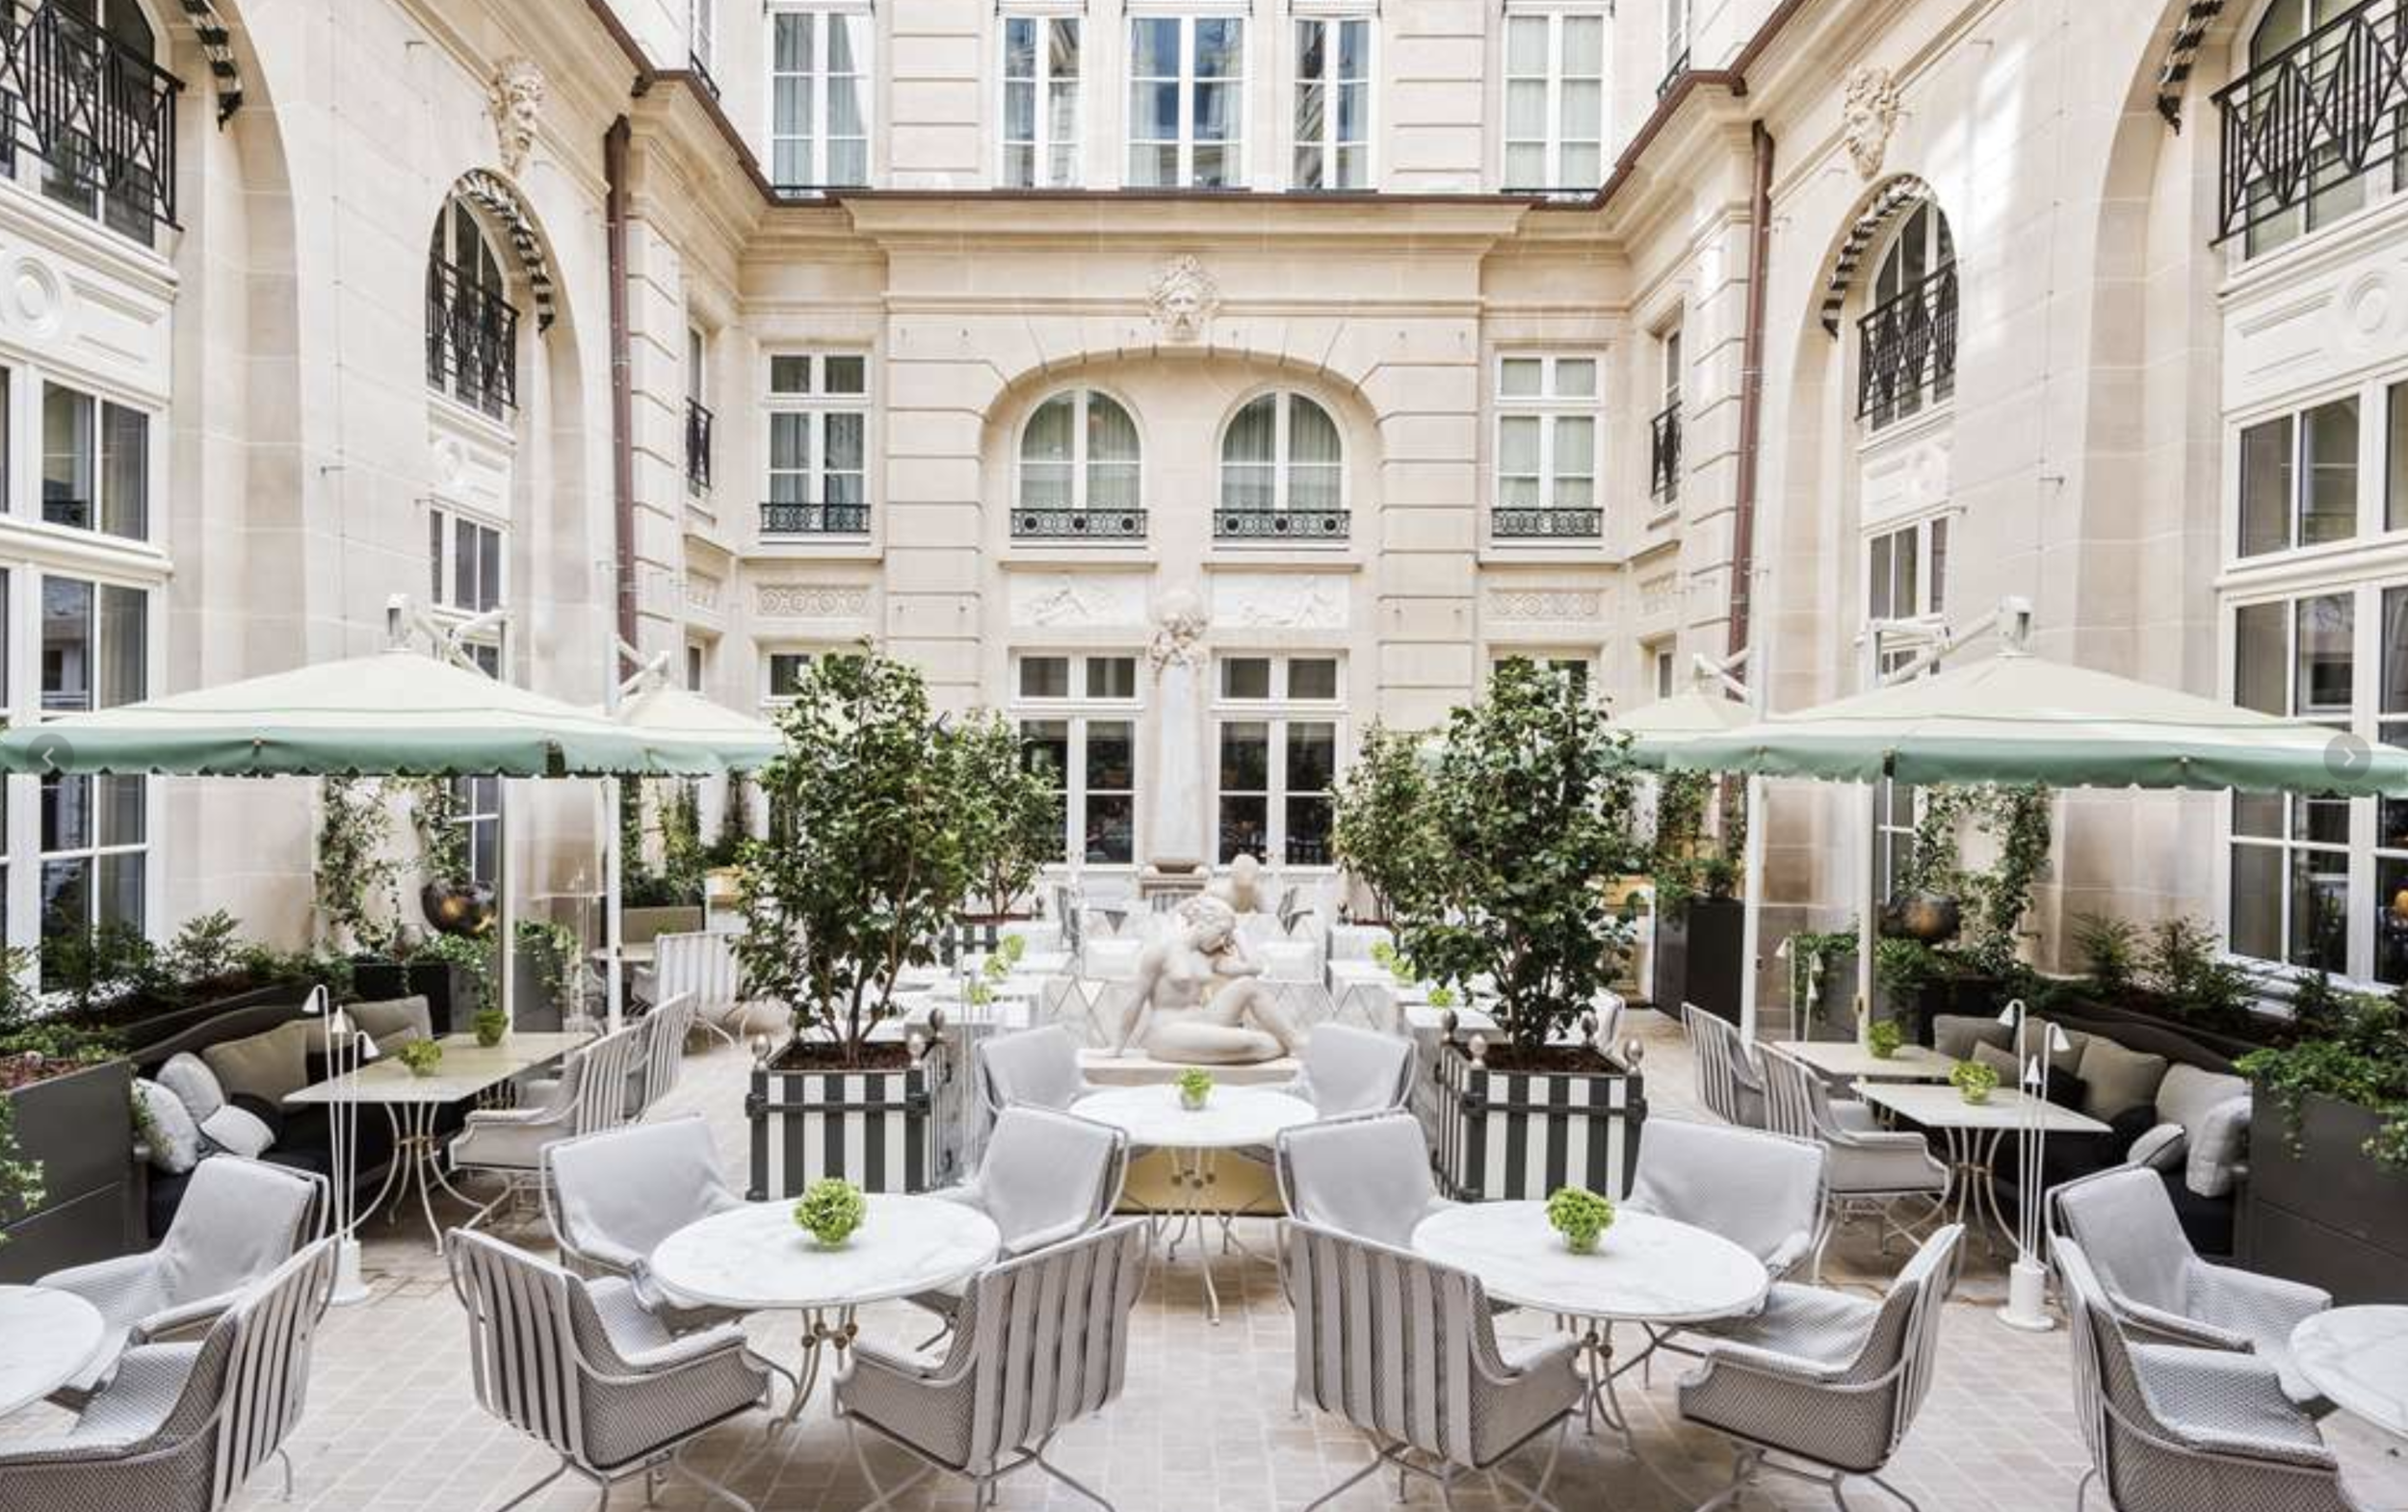 Travel Well - Book an urban oasis to replenish you while you see the sites. The Hotel de Crillon, A Rosewood Hotel, is the epitome of the elegance and spirit of Paris and just newly refurbished. Savor quiet moments at their spa, Sense, with a menu of treatments inspired by East Asia and France. Or swim in their gorgeous indoor pool. By balancing time touring and time for replenishment, you'll return home feeling yourself.France